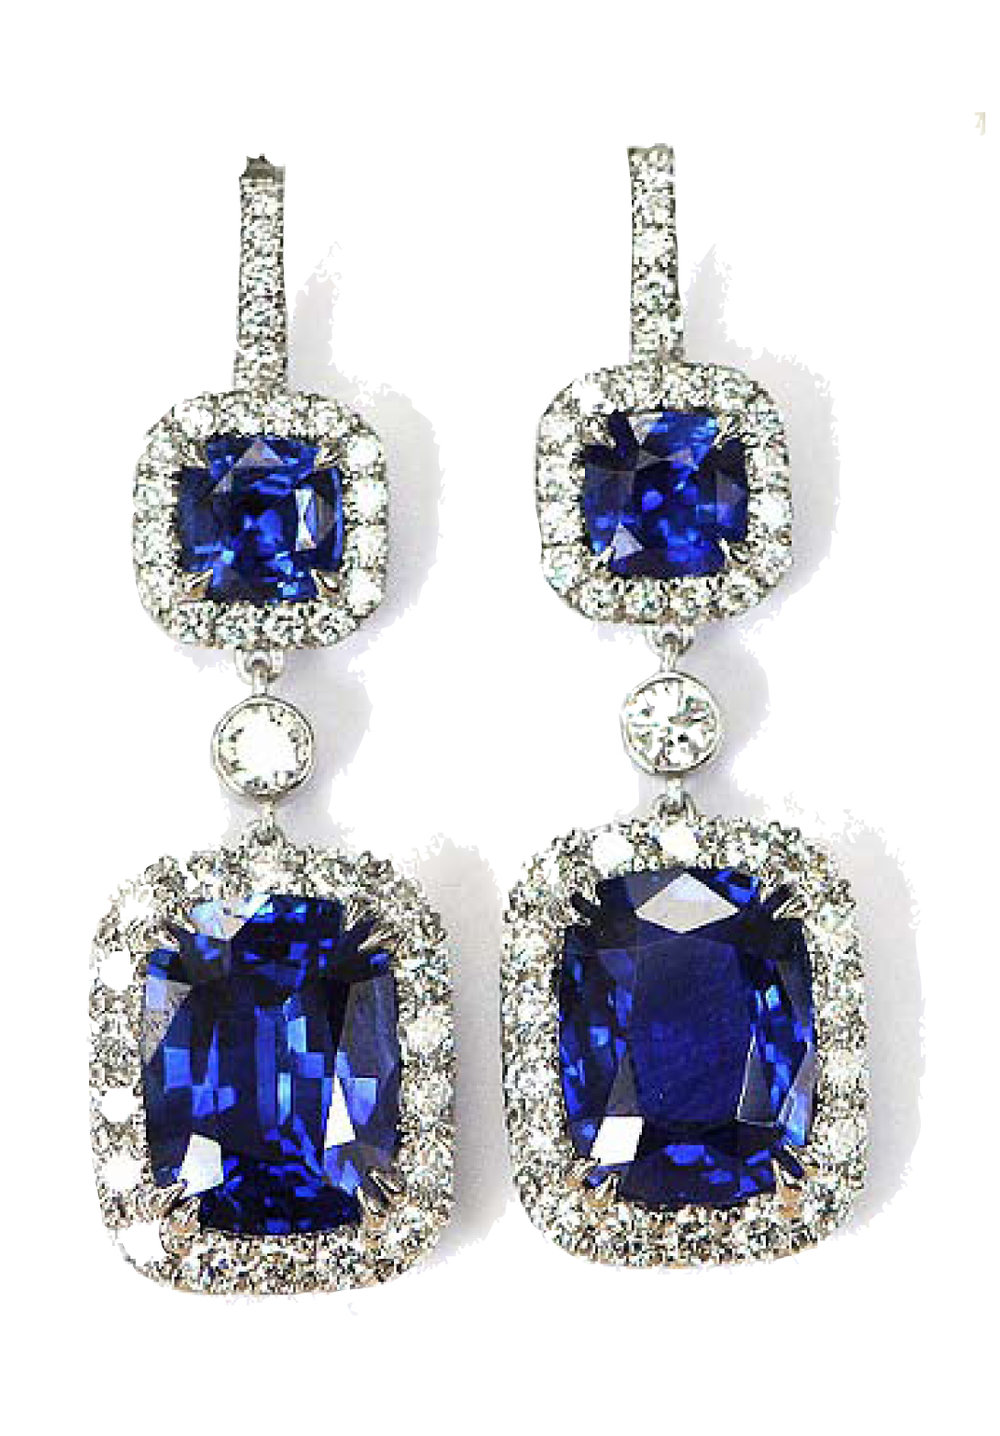 earrings4.jpg